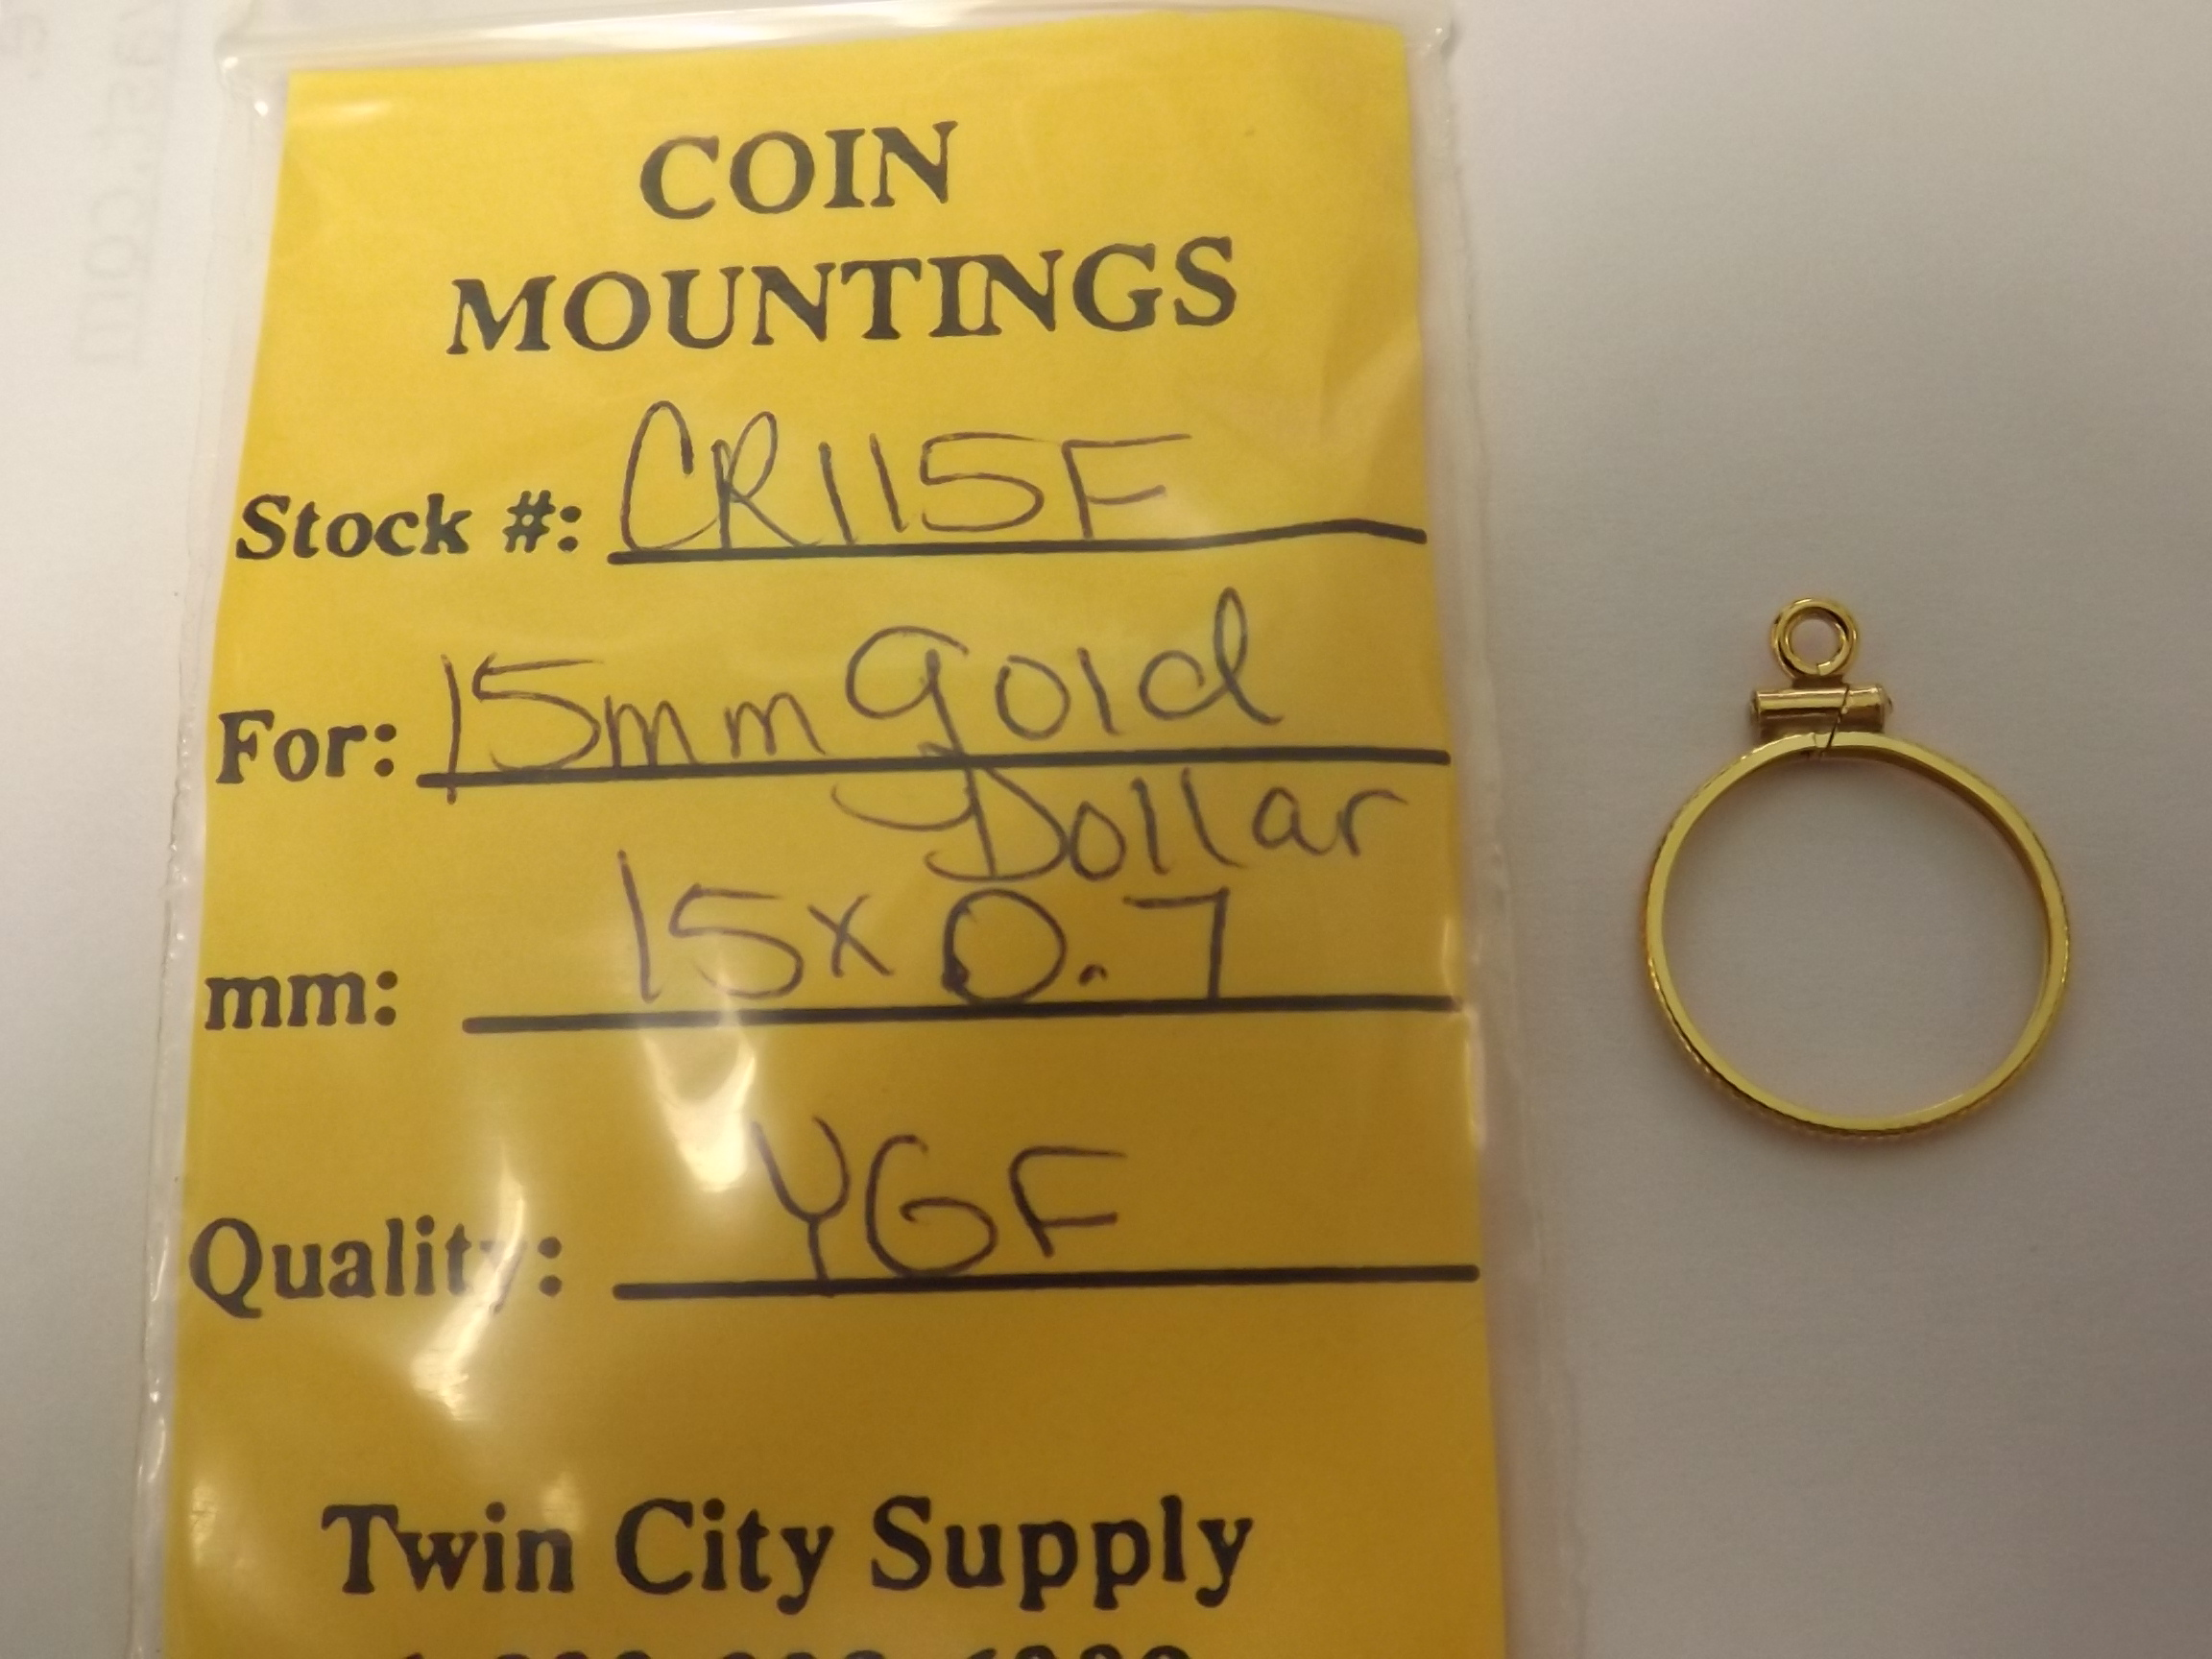 CR115F American Coin Mounting--15mm Gold Dollar-Yellow Gold Filled- Closeout!